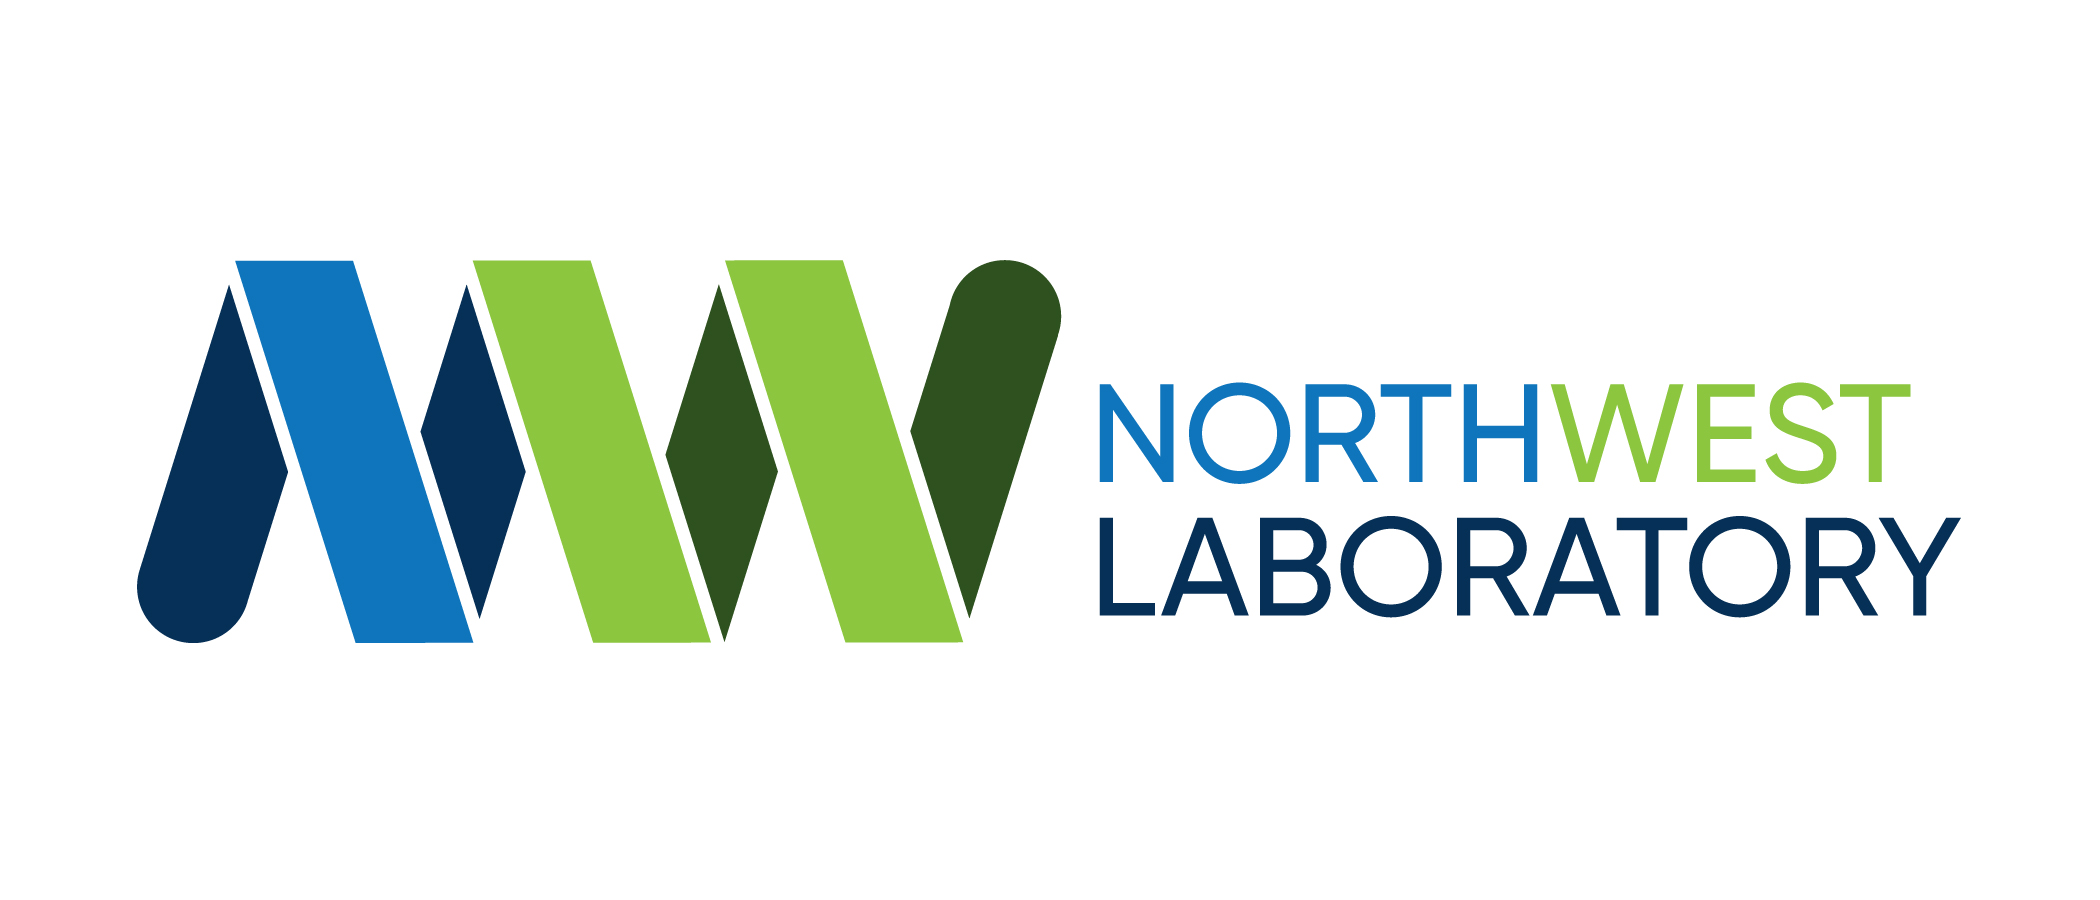 Northwest Laboratory